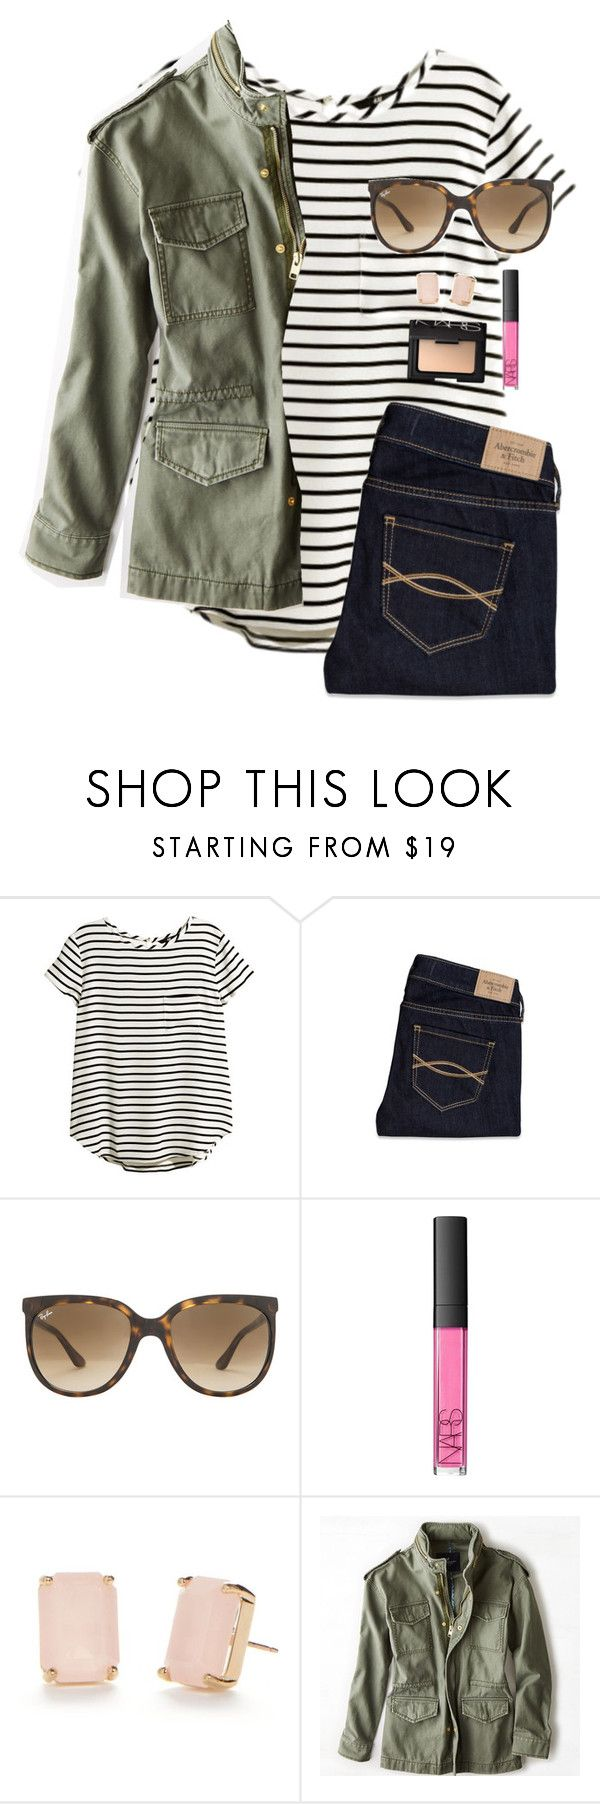 """""""Insta: @gracie_gerhart7: comment instas"""" by graciegerhart7 ❤ liked on Polyvore featuring H&M, Abercrombie & Fitch, Ray-Ban, NARS Cosmetics, Kate Spade, American Eagle Outfitters, women's clothing, women's fashion, women and female"""